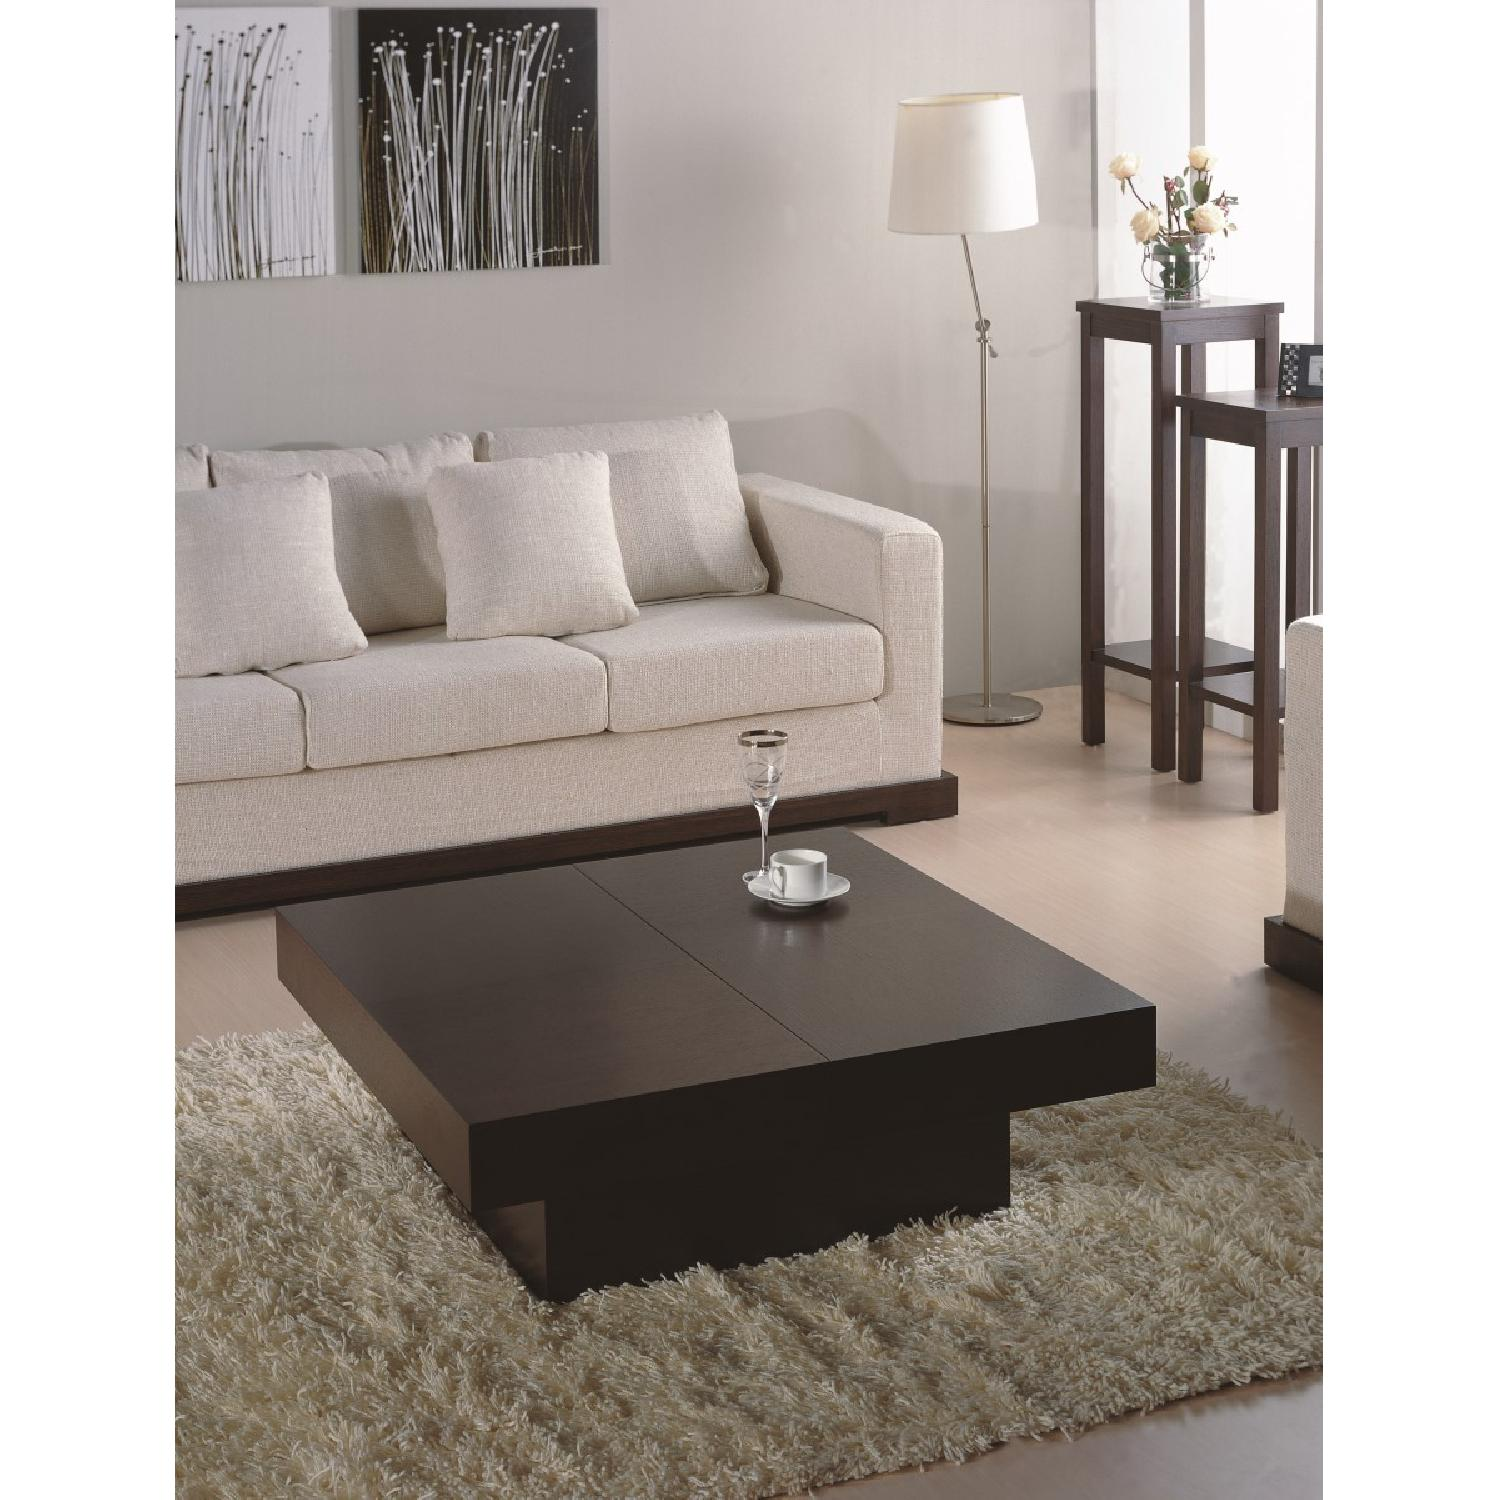 Modern Square Coffee Table in Wenge Finish w/ Hidden Storage-2